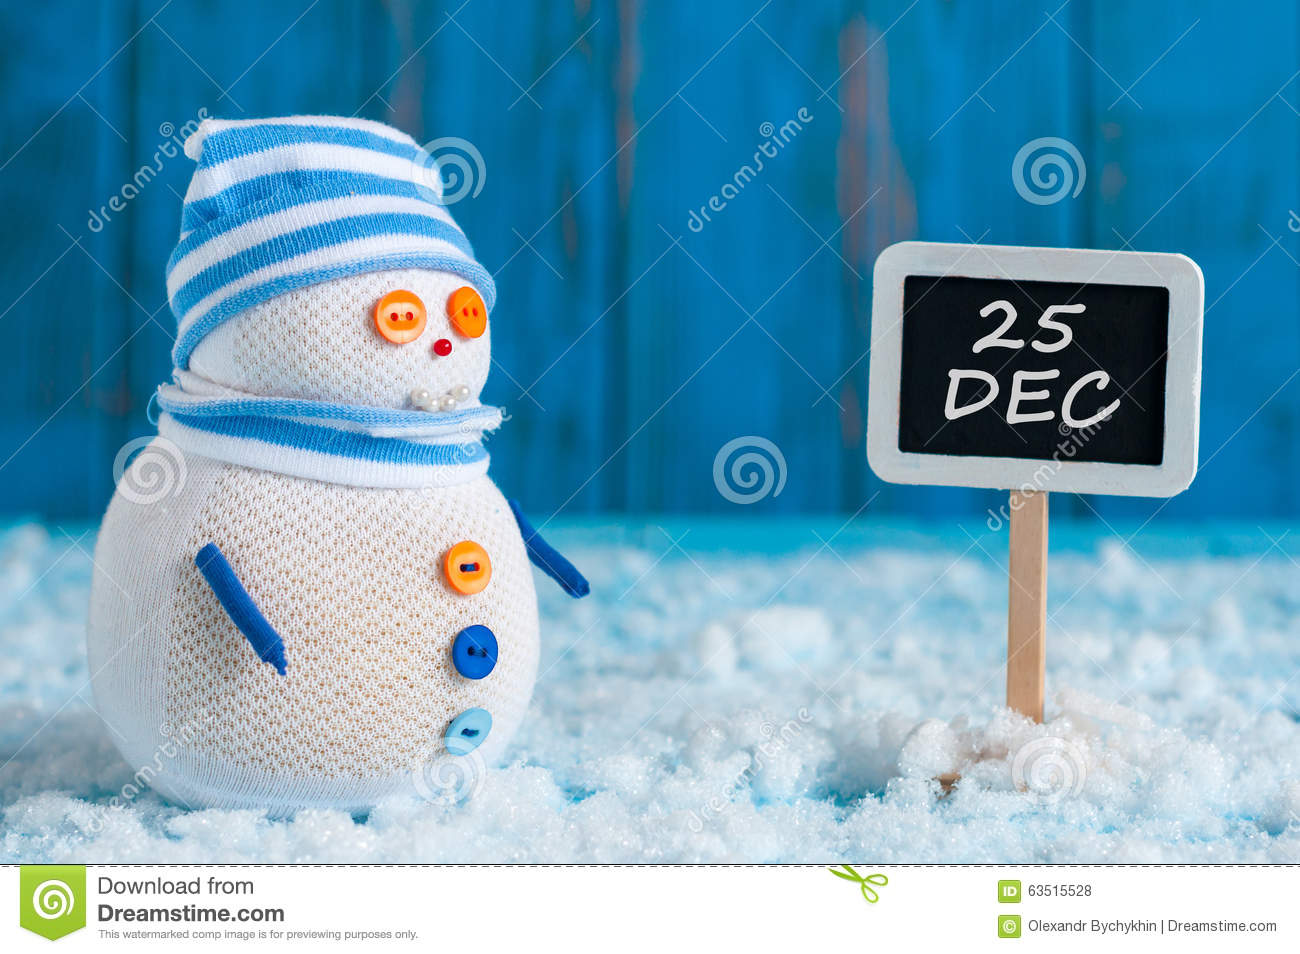 Save The Date For Christmas Day With This Handmade Snowman Stock ...